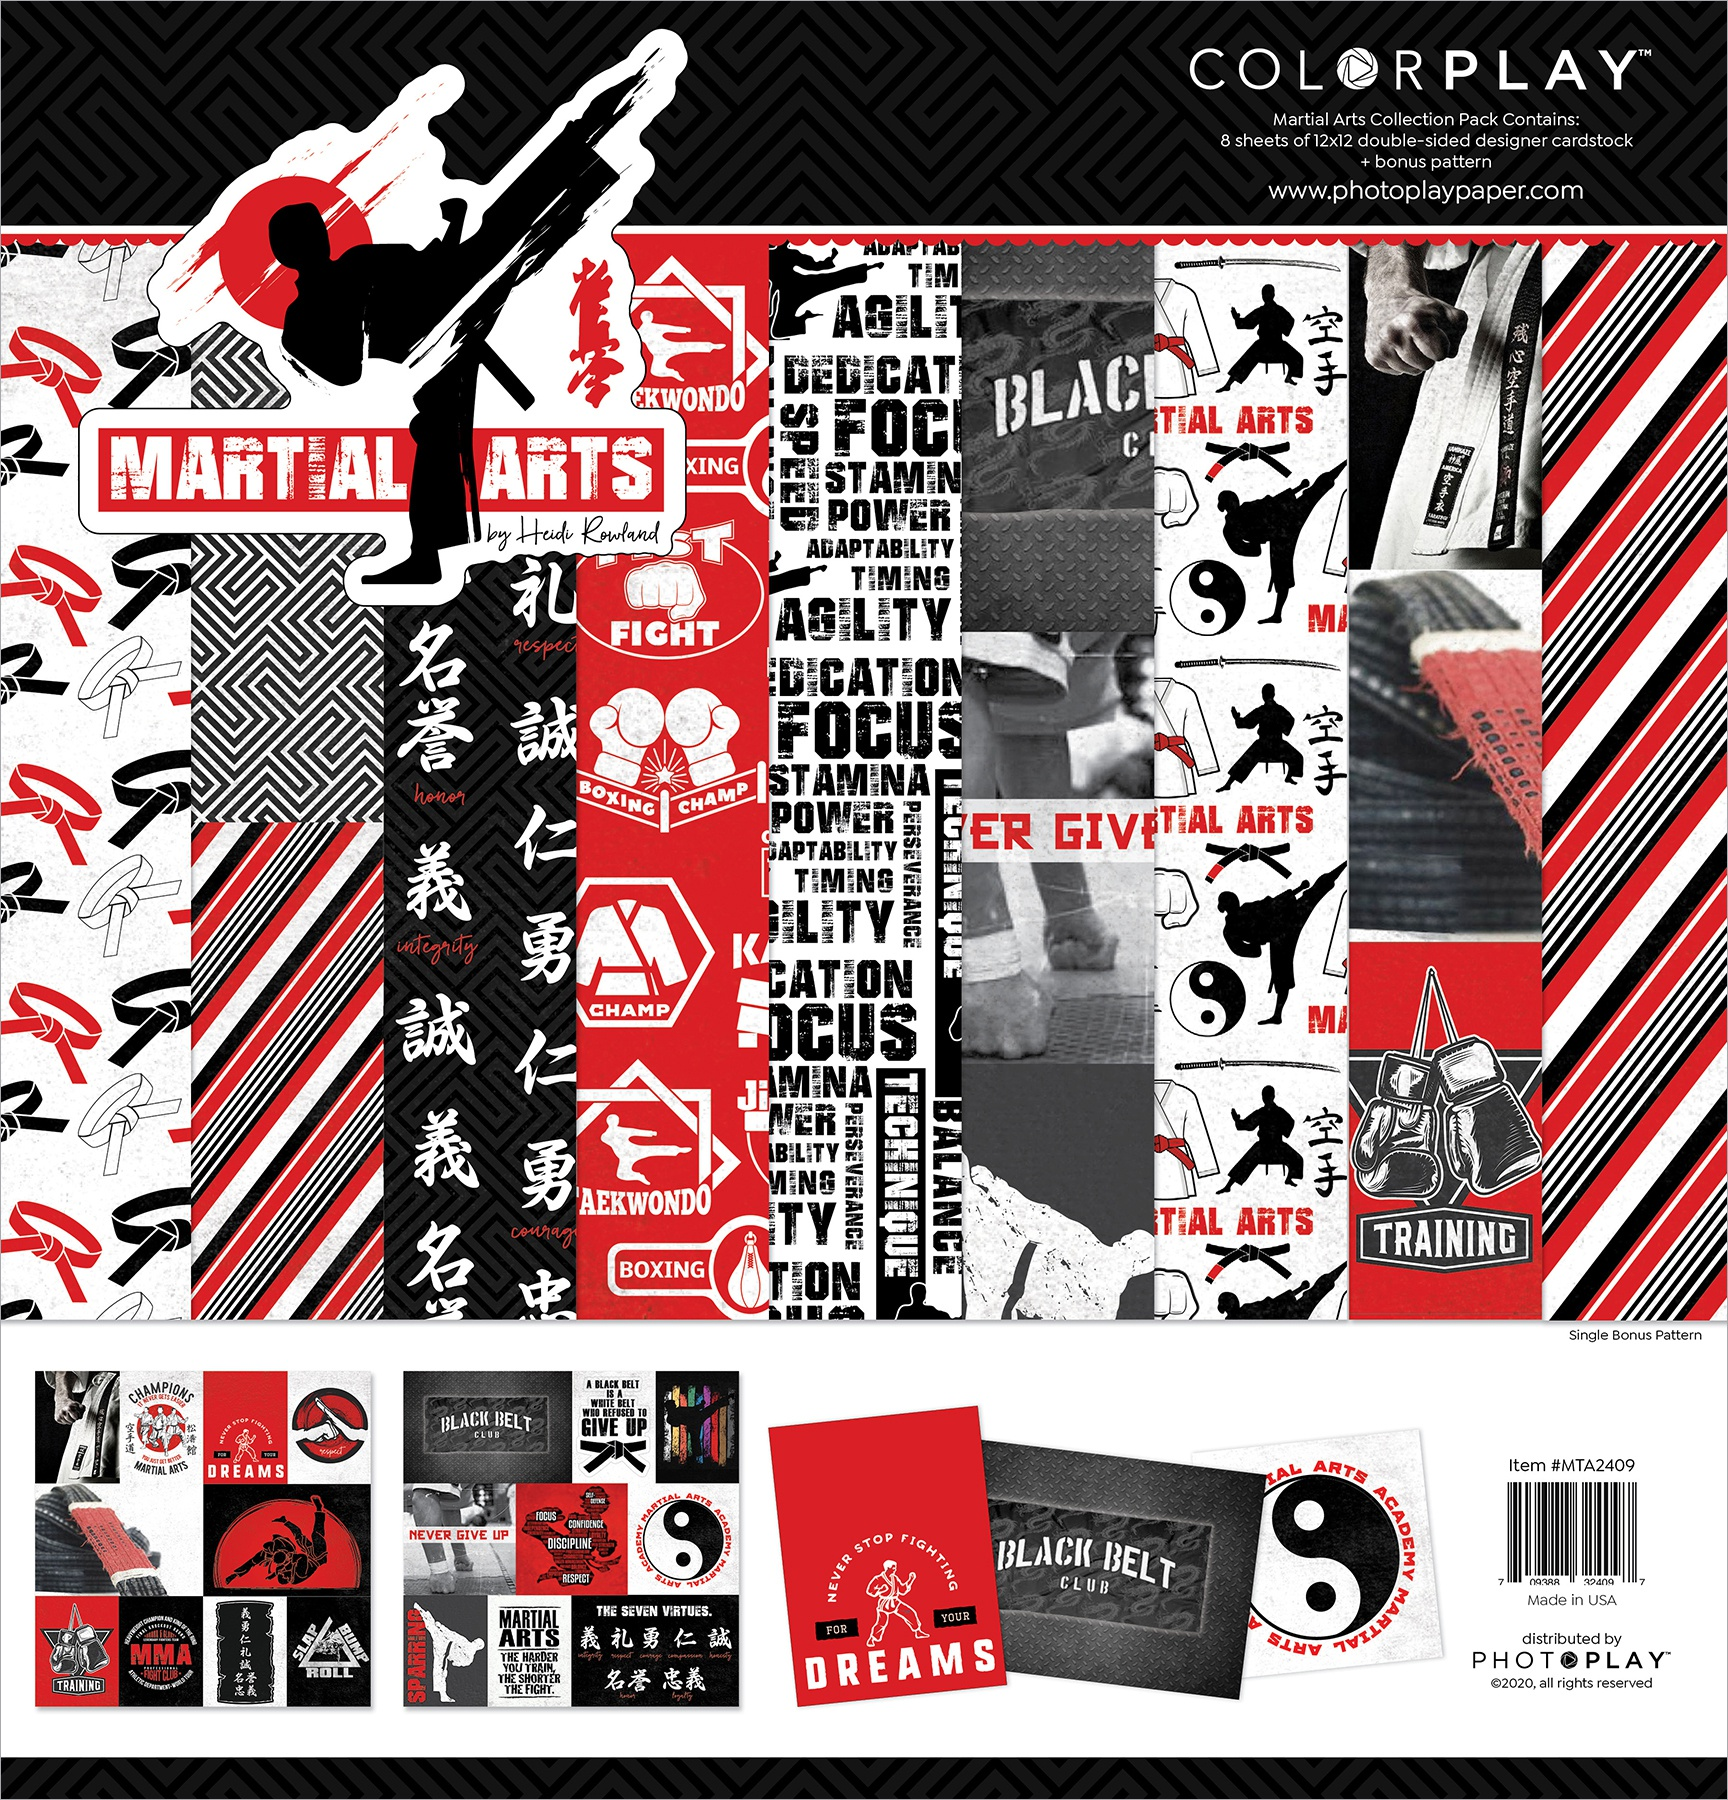 ColorPlay Martial Arts Collection Pack 12x12